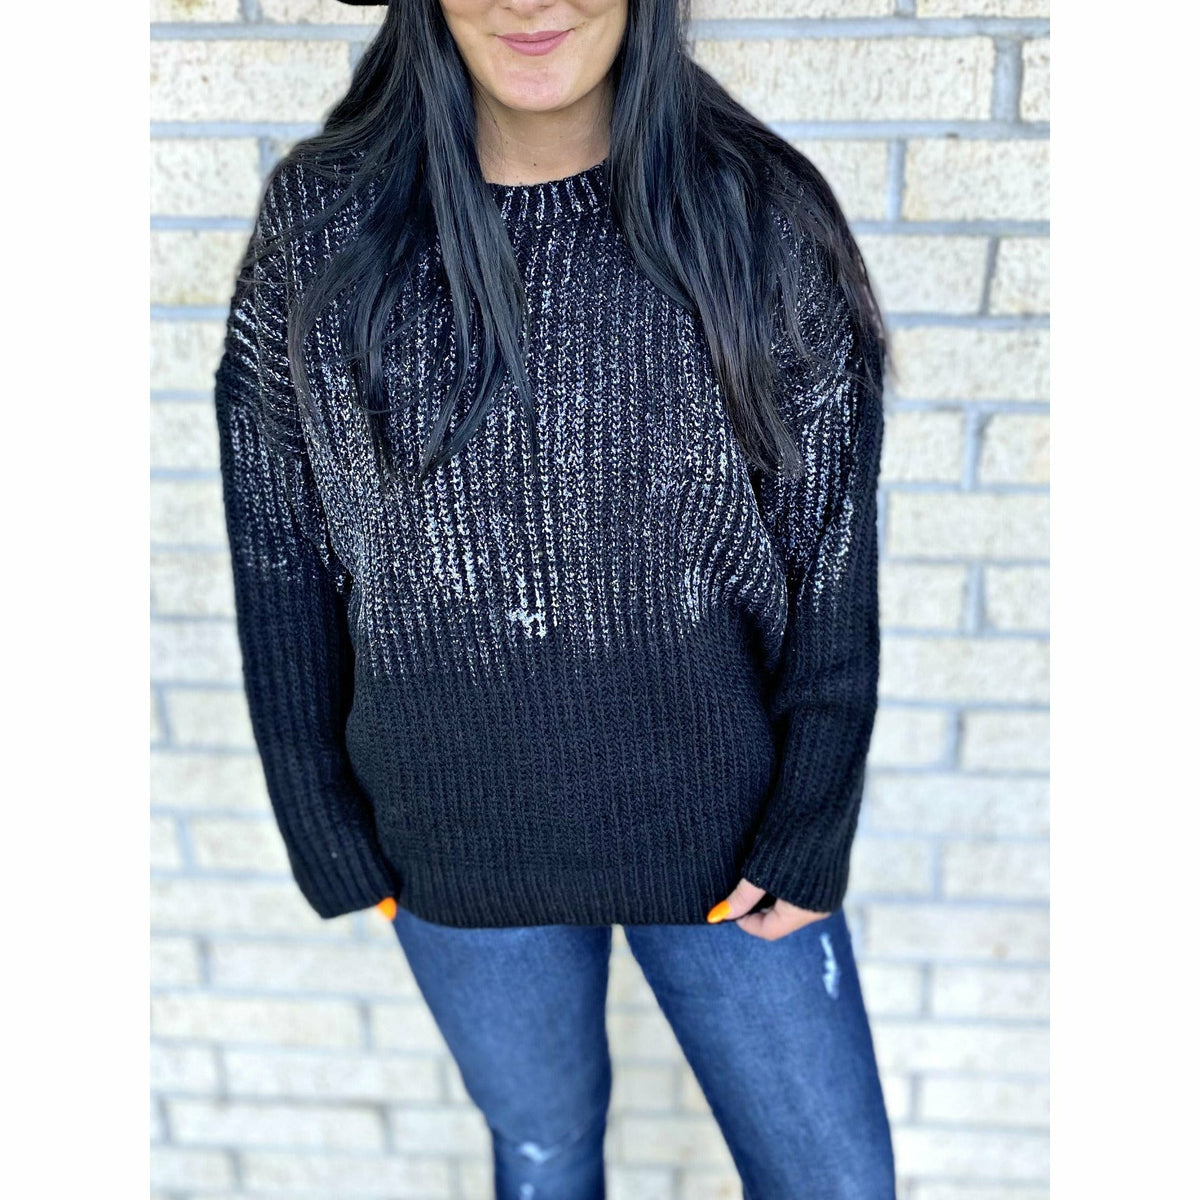 Black with silver Shimmer Sweater